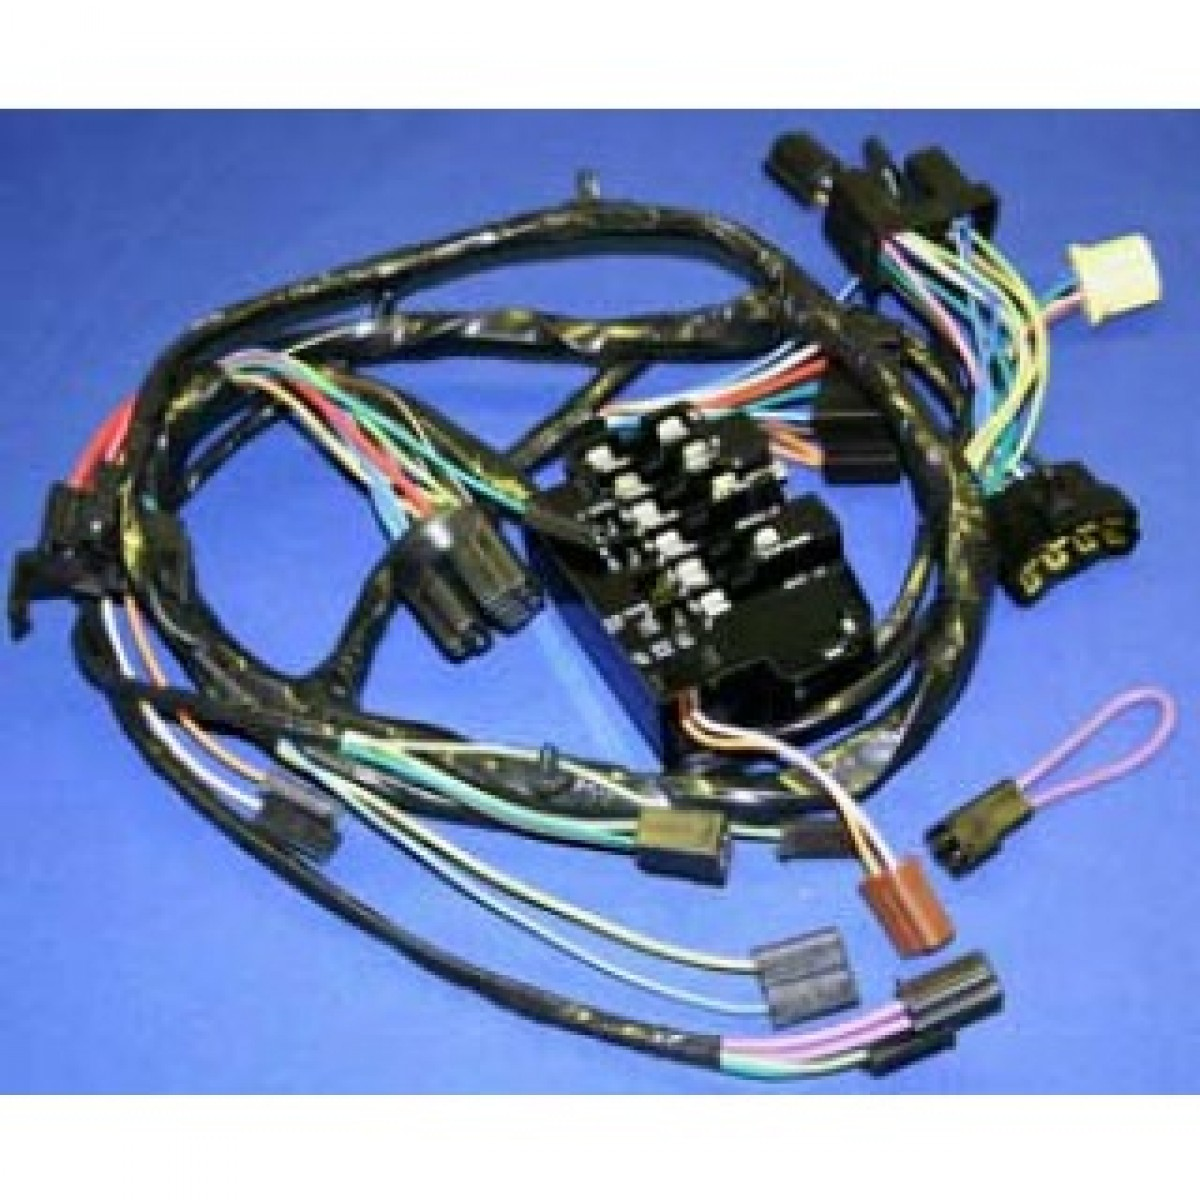 1989 Jeep Wrangler Heater Wiring Diagram 87 Chevy Truck Engine Harness Library 69 C10 Free Image For